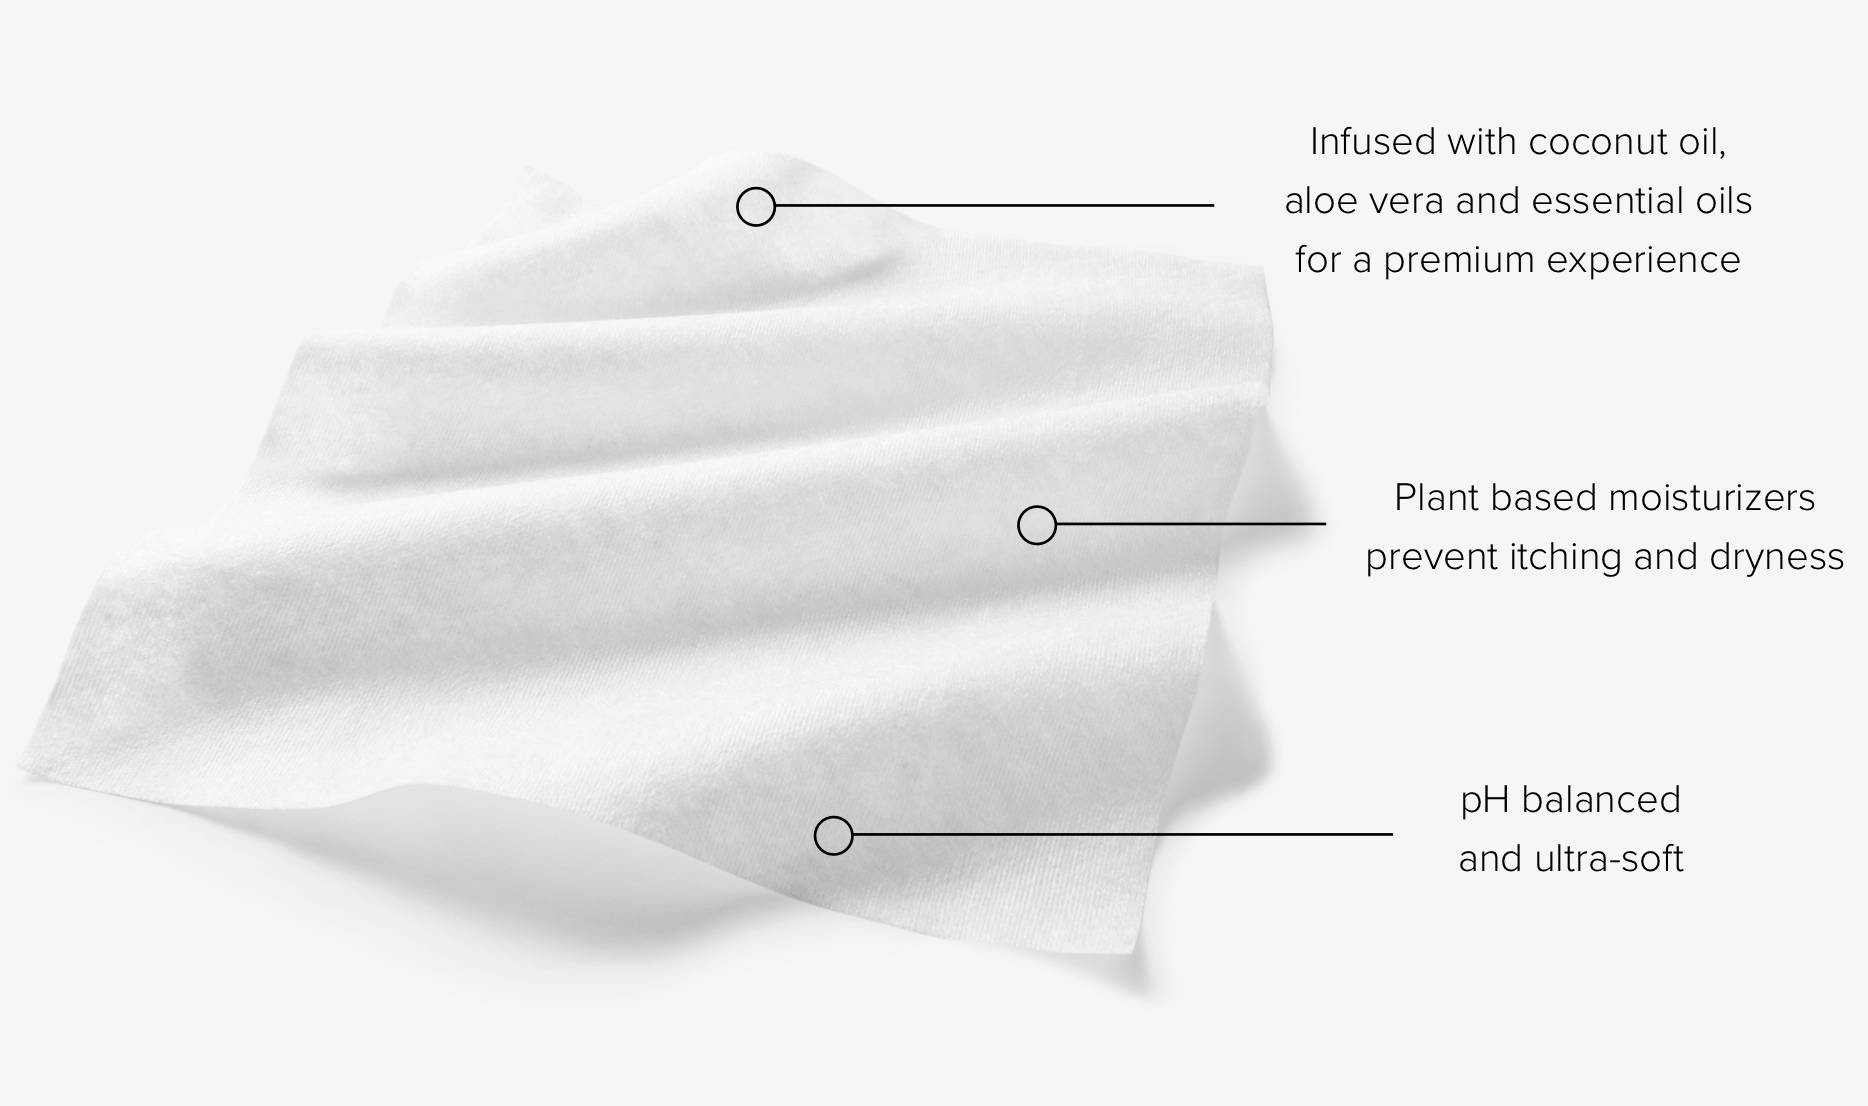 A loose body cloth in a diagram calling out ingredients and benefits